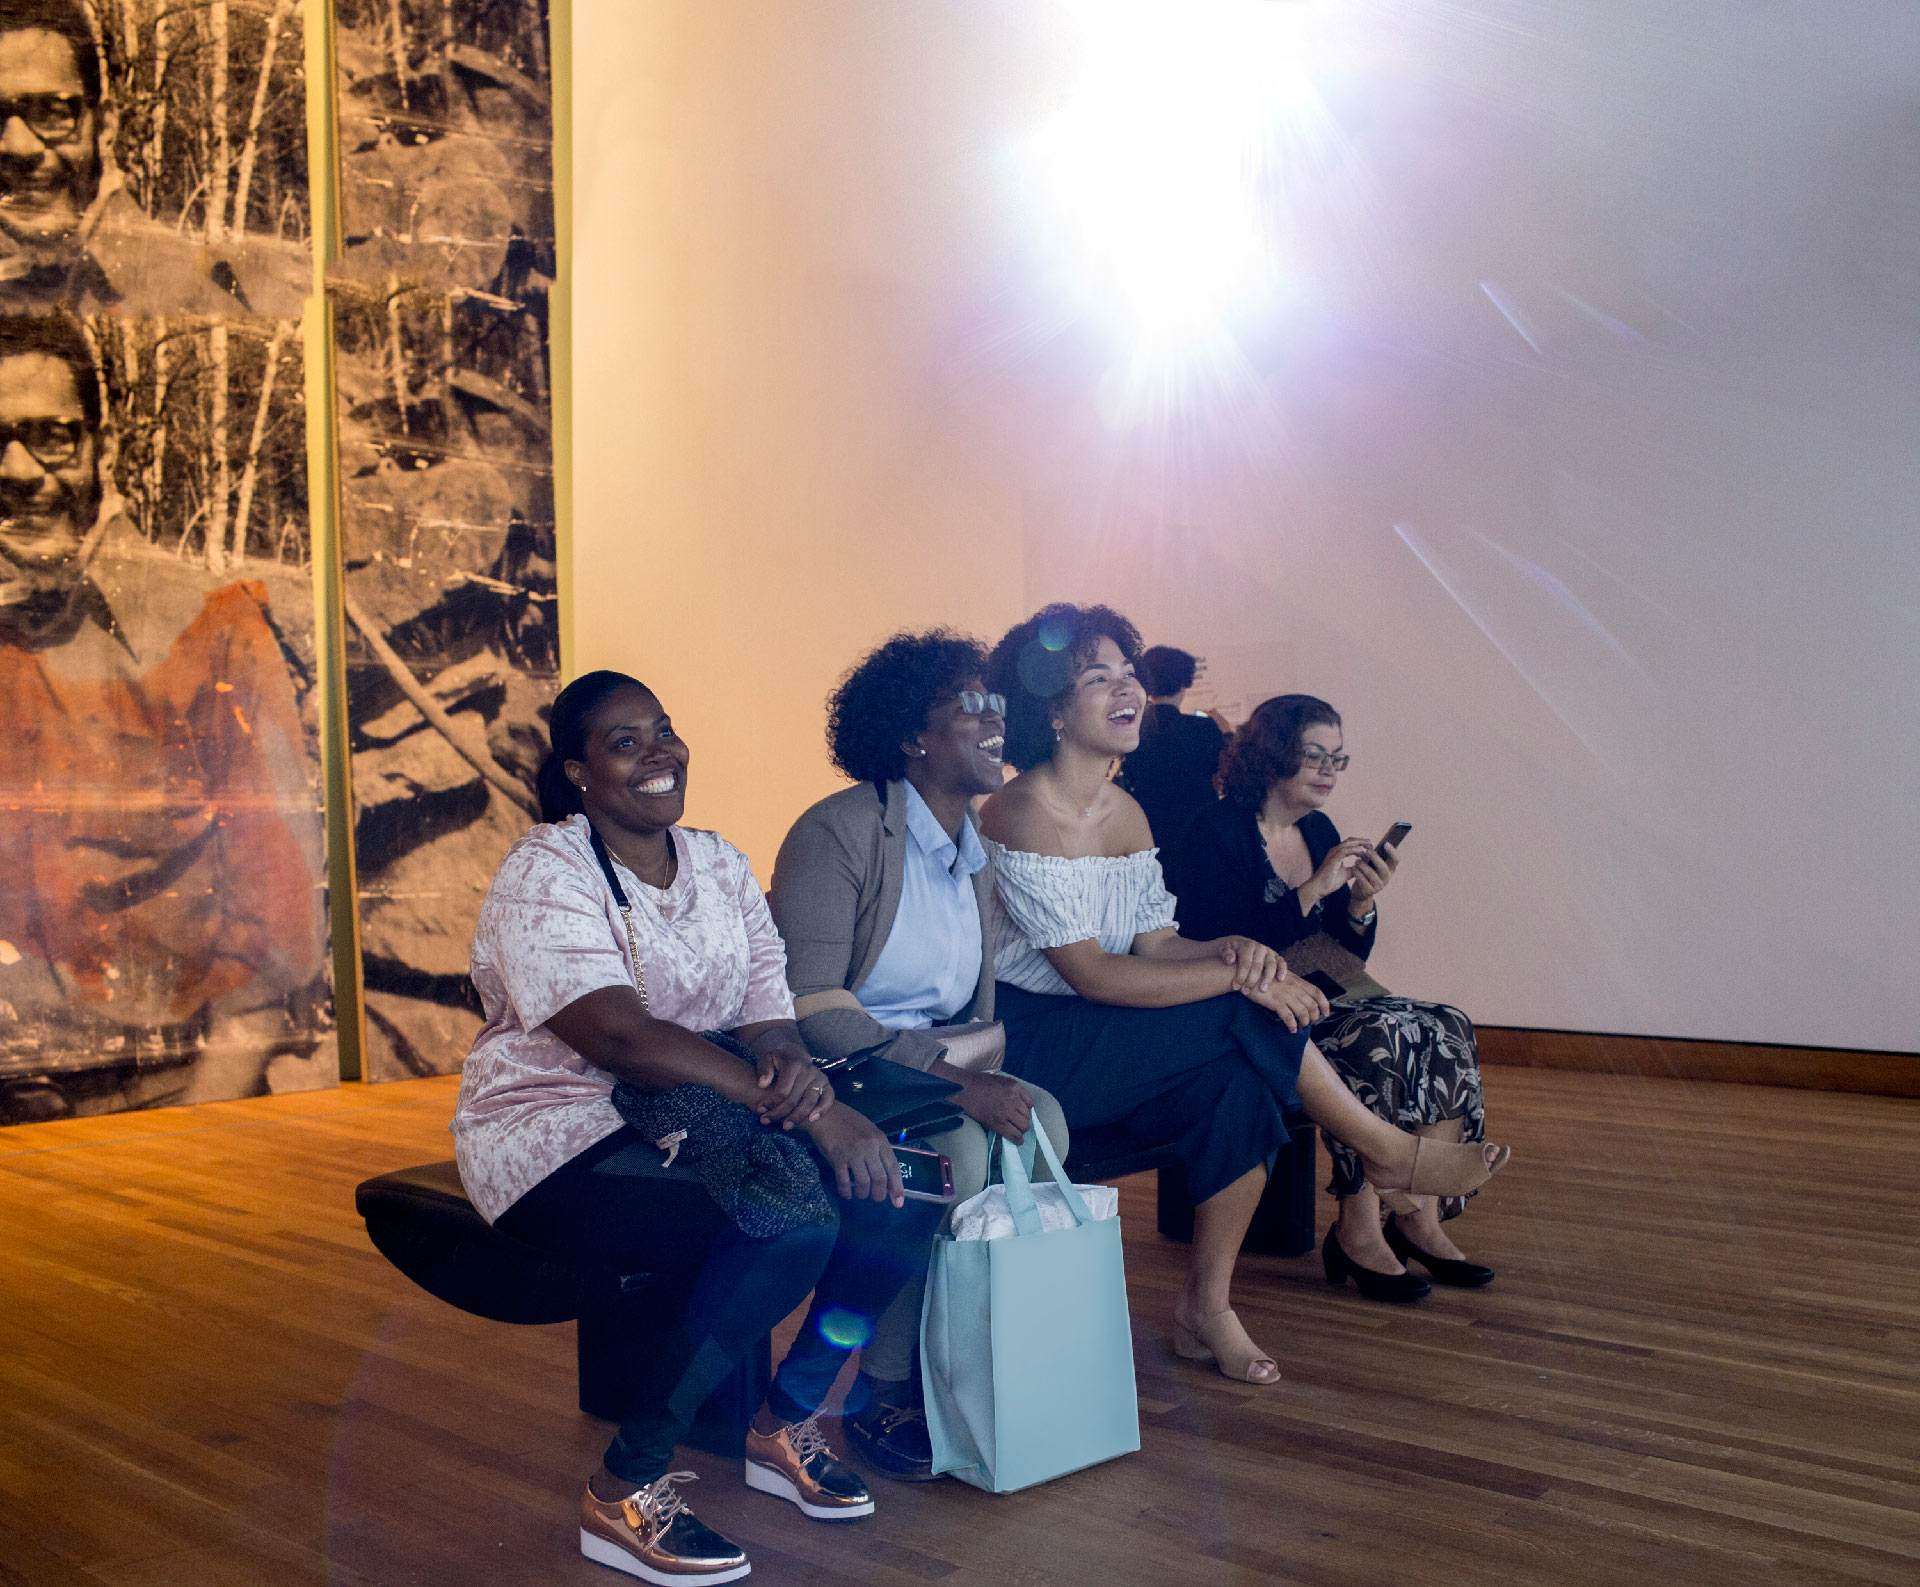 Group of women at an opening. Photo © Sébastien Roy